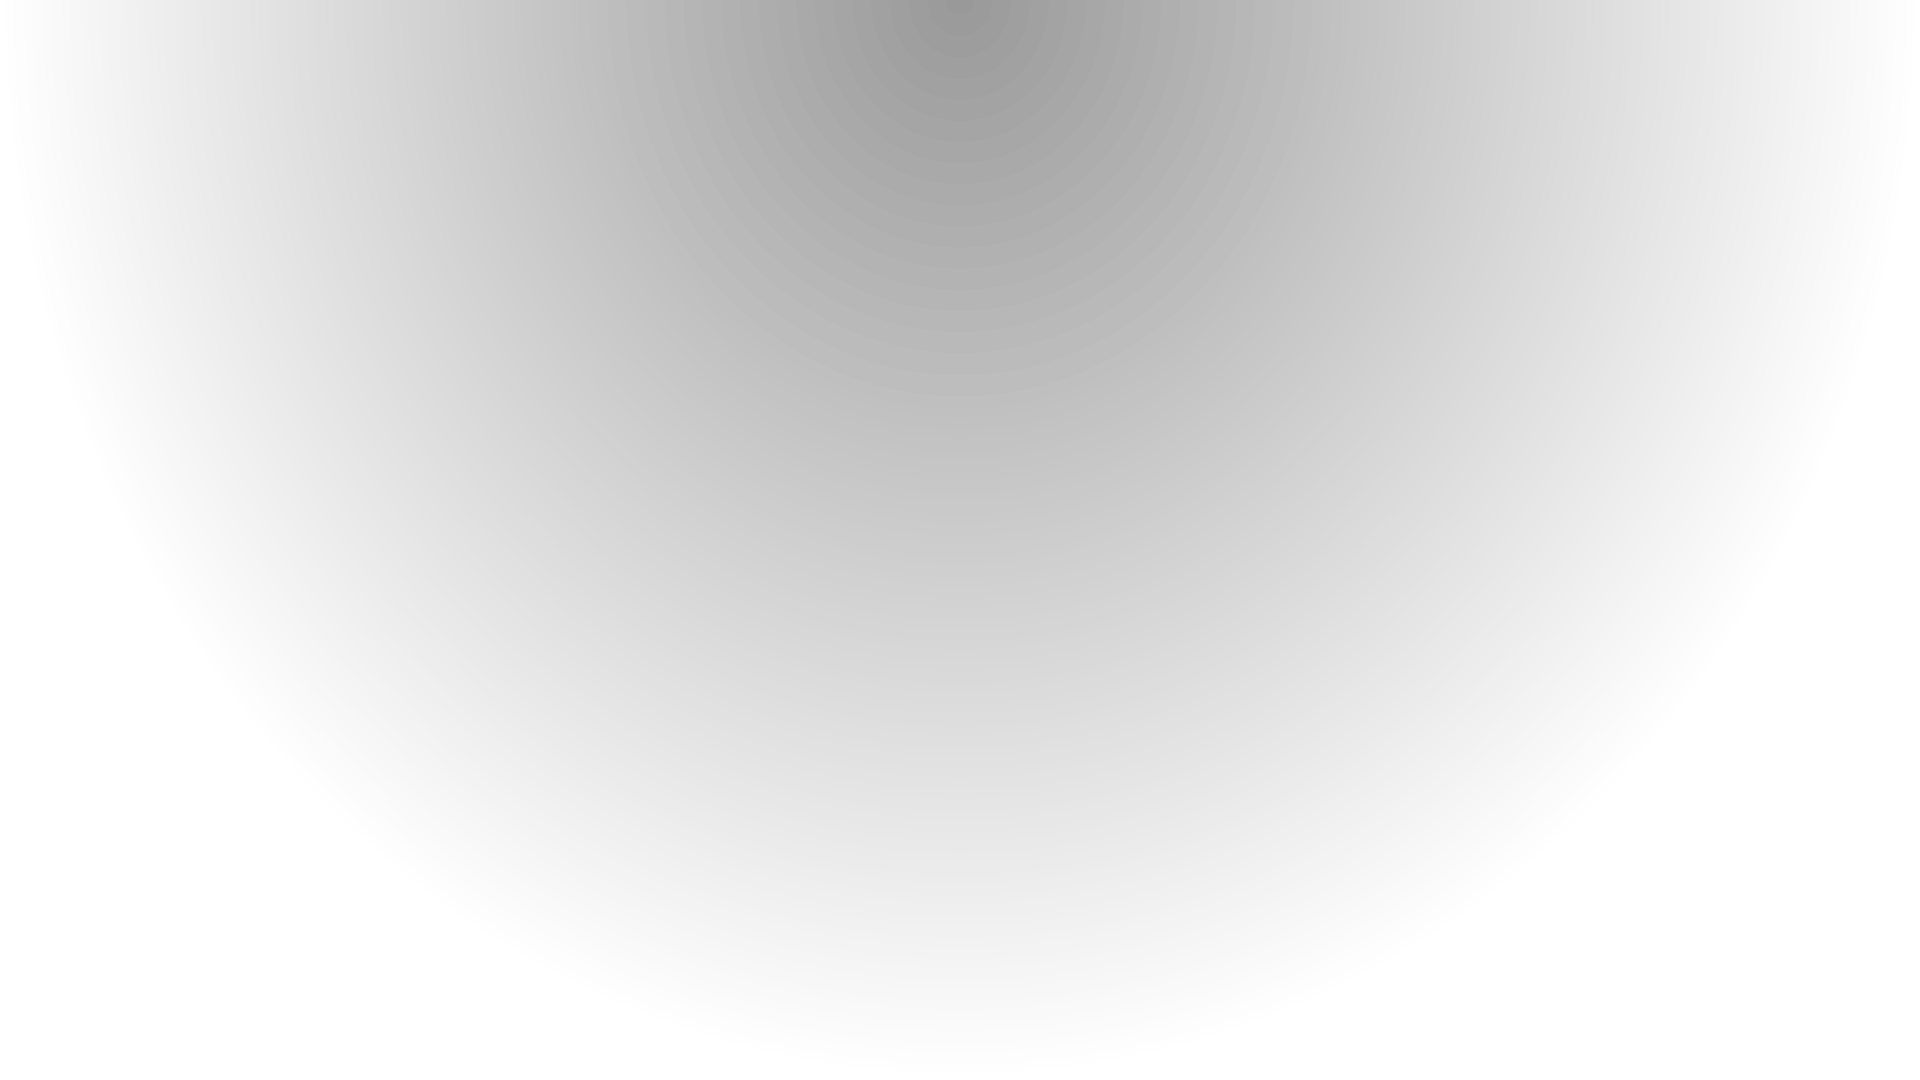 radial-gradient-black-top-40